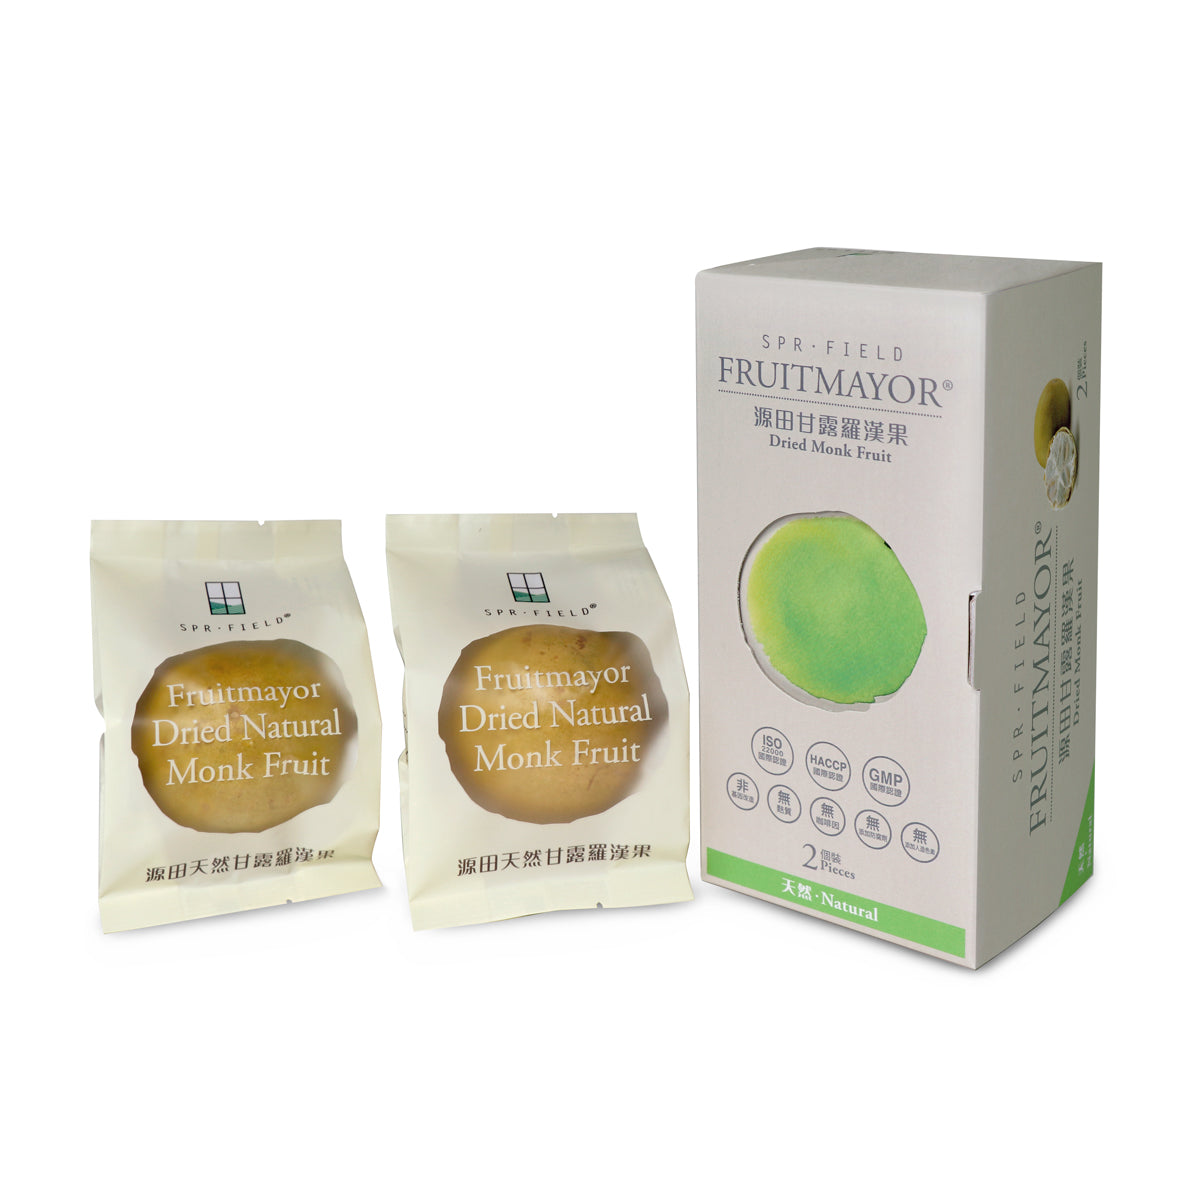 Fruitmayor Natural Monk Fruit(2 pc Gift Pack)